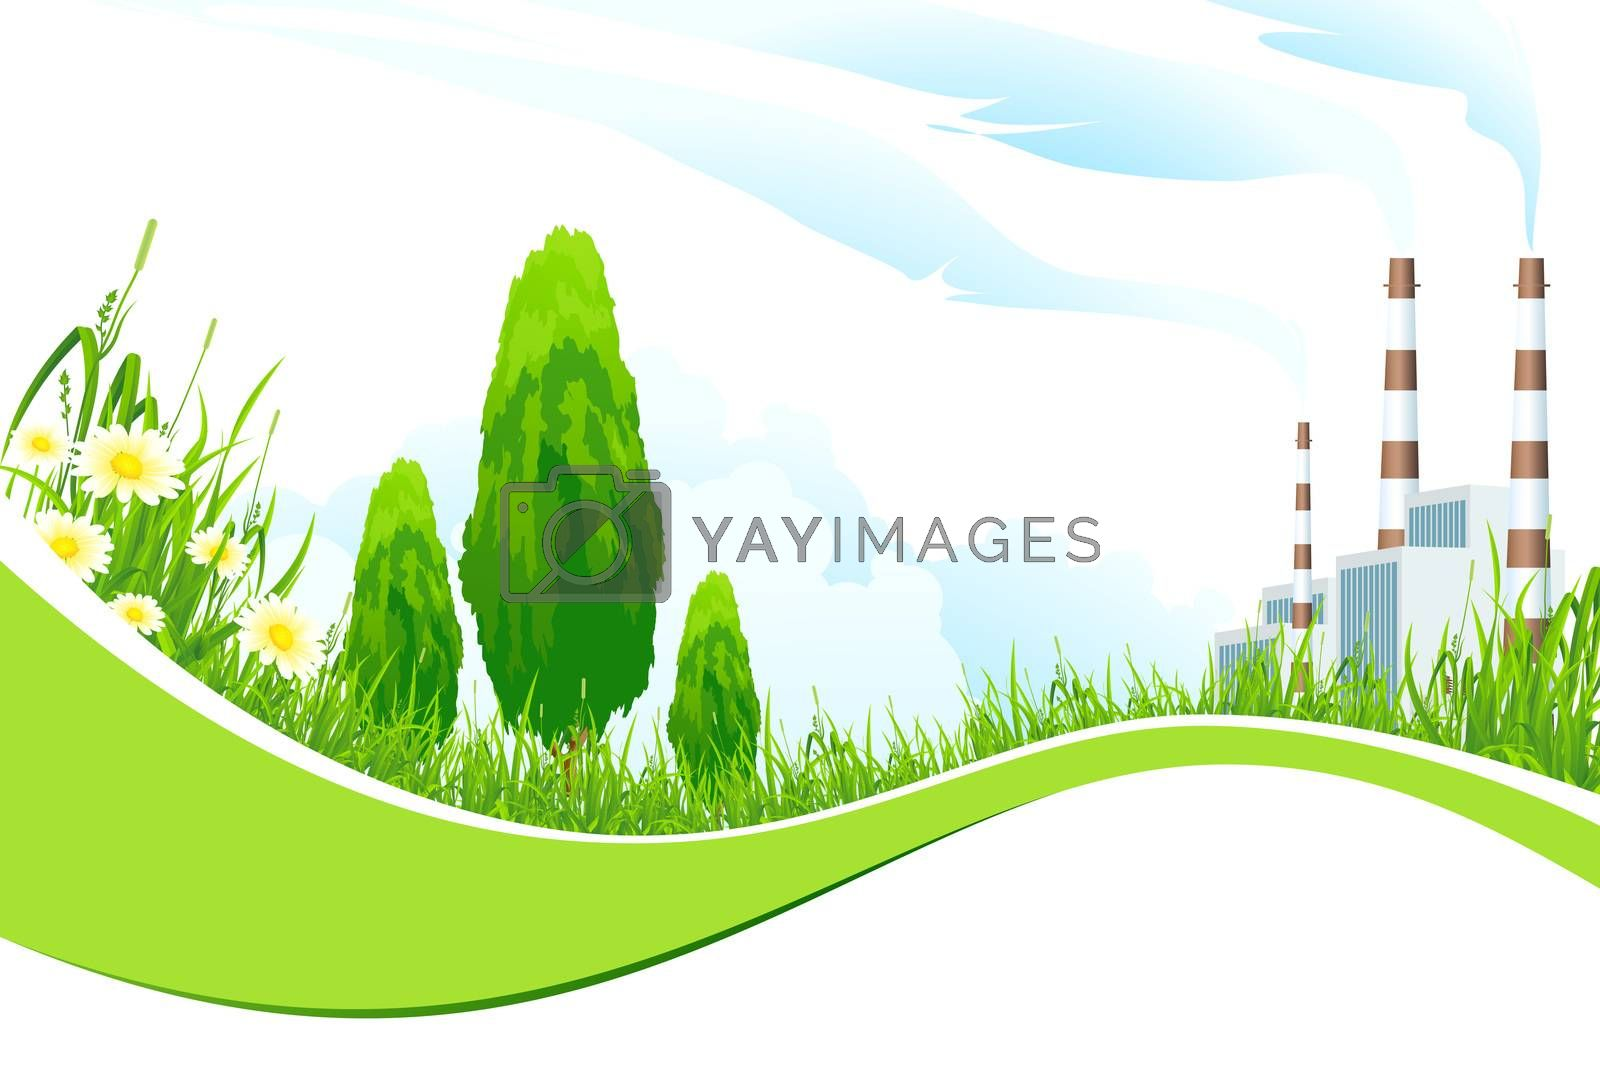 Abstract Background with Power Plant and Trees by WaD